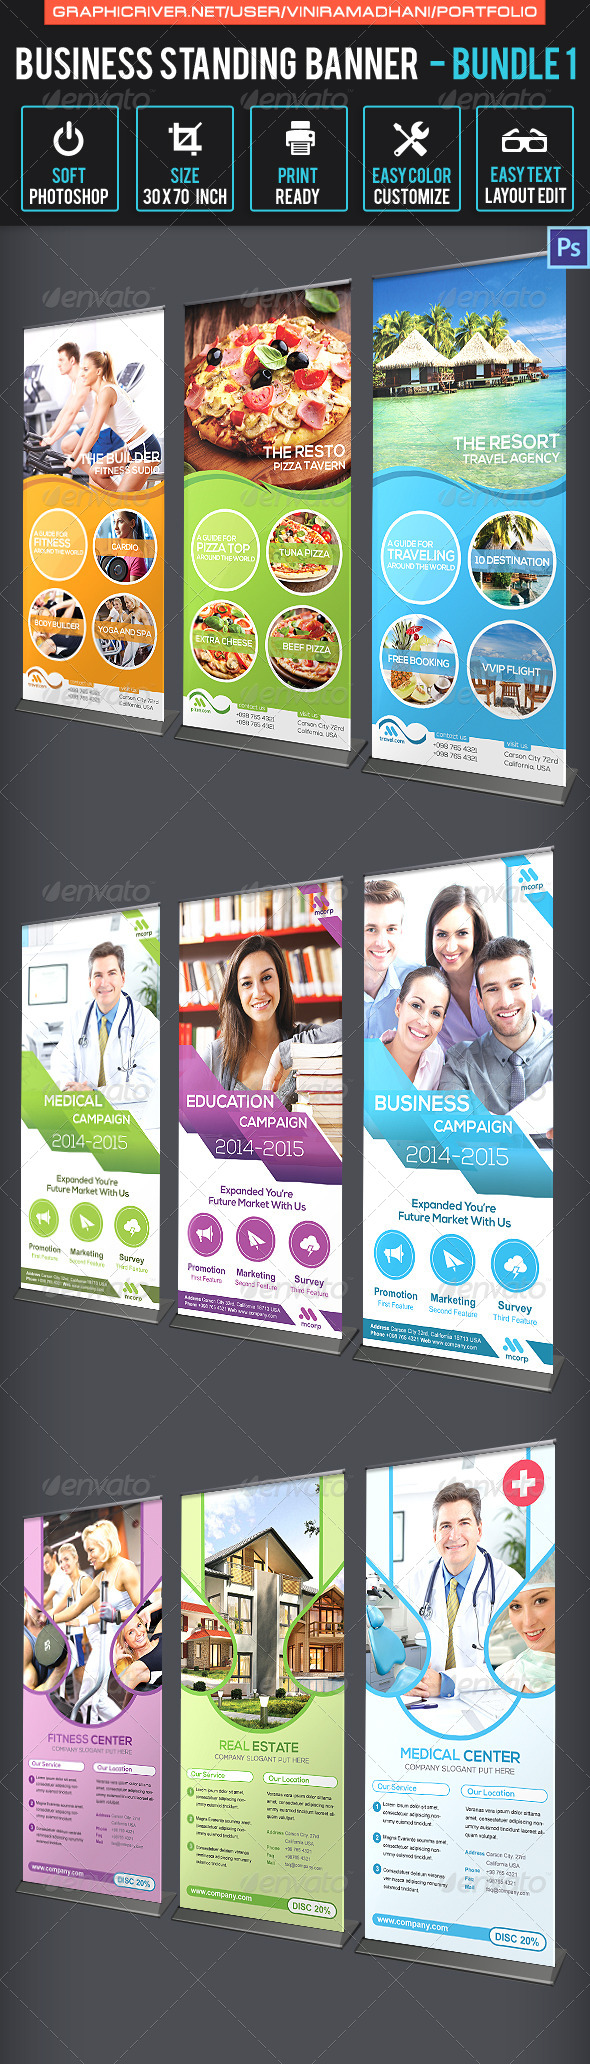 Business Standing Banner Bundle 1 - Signage Print Templates